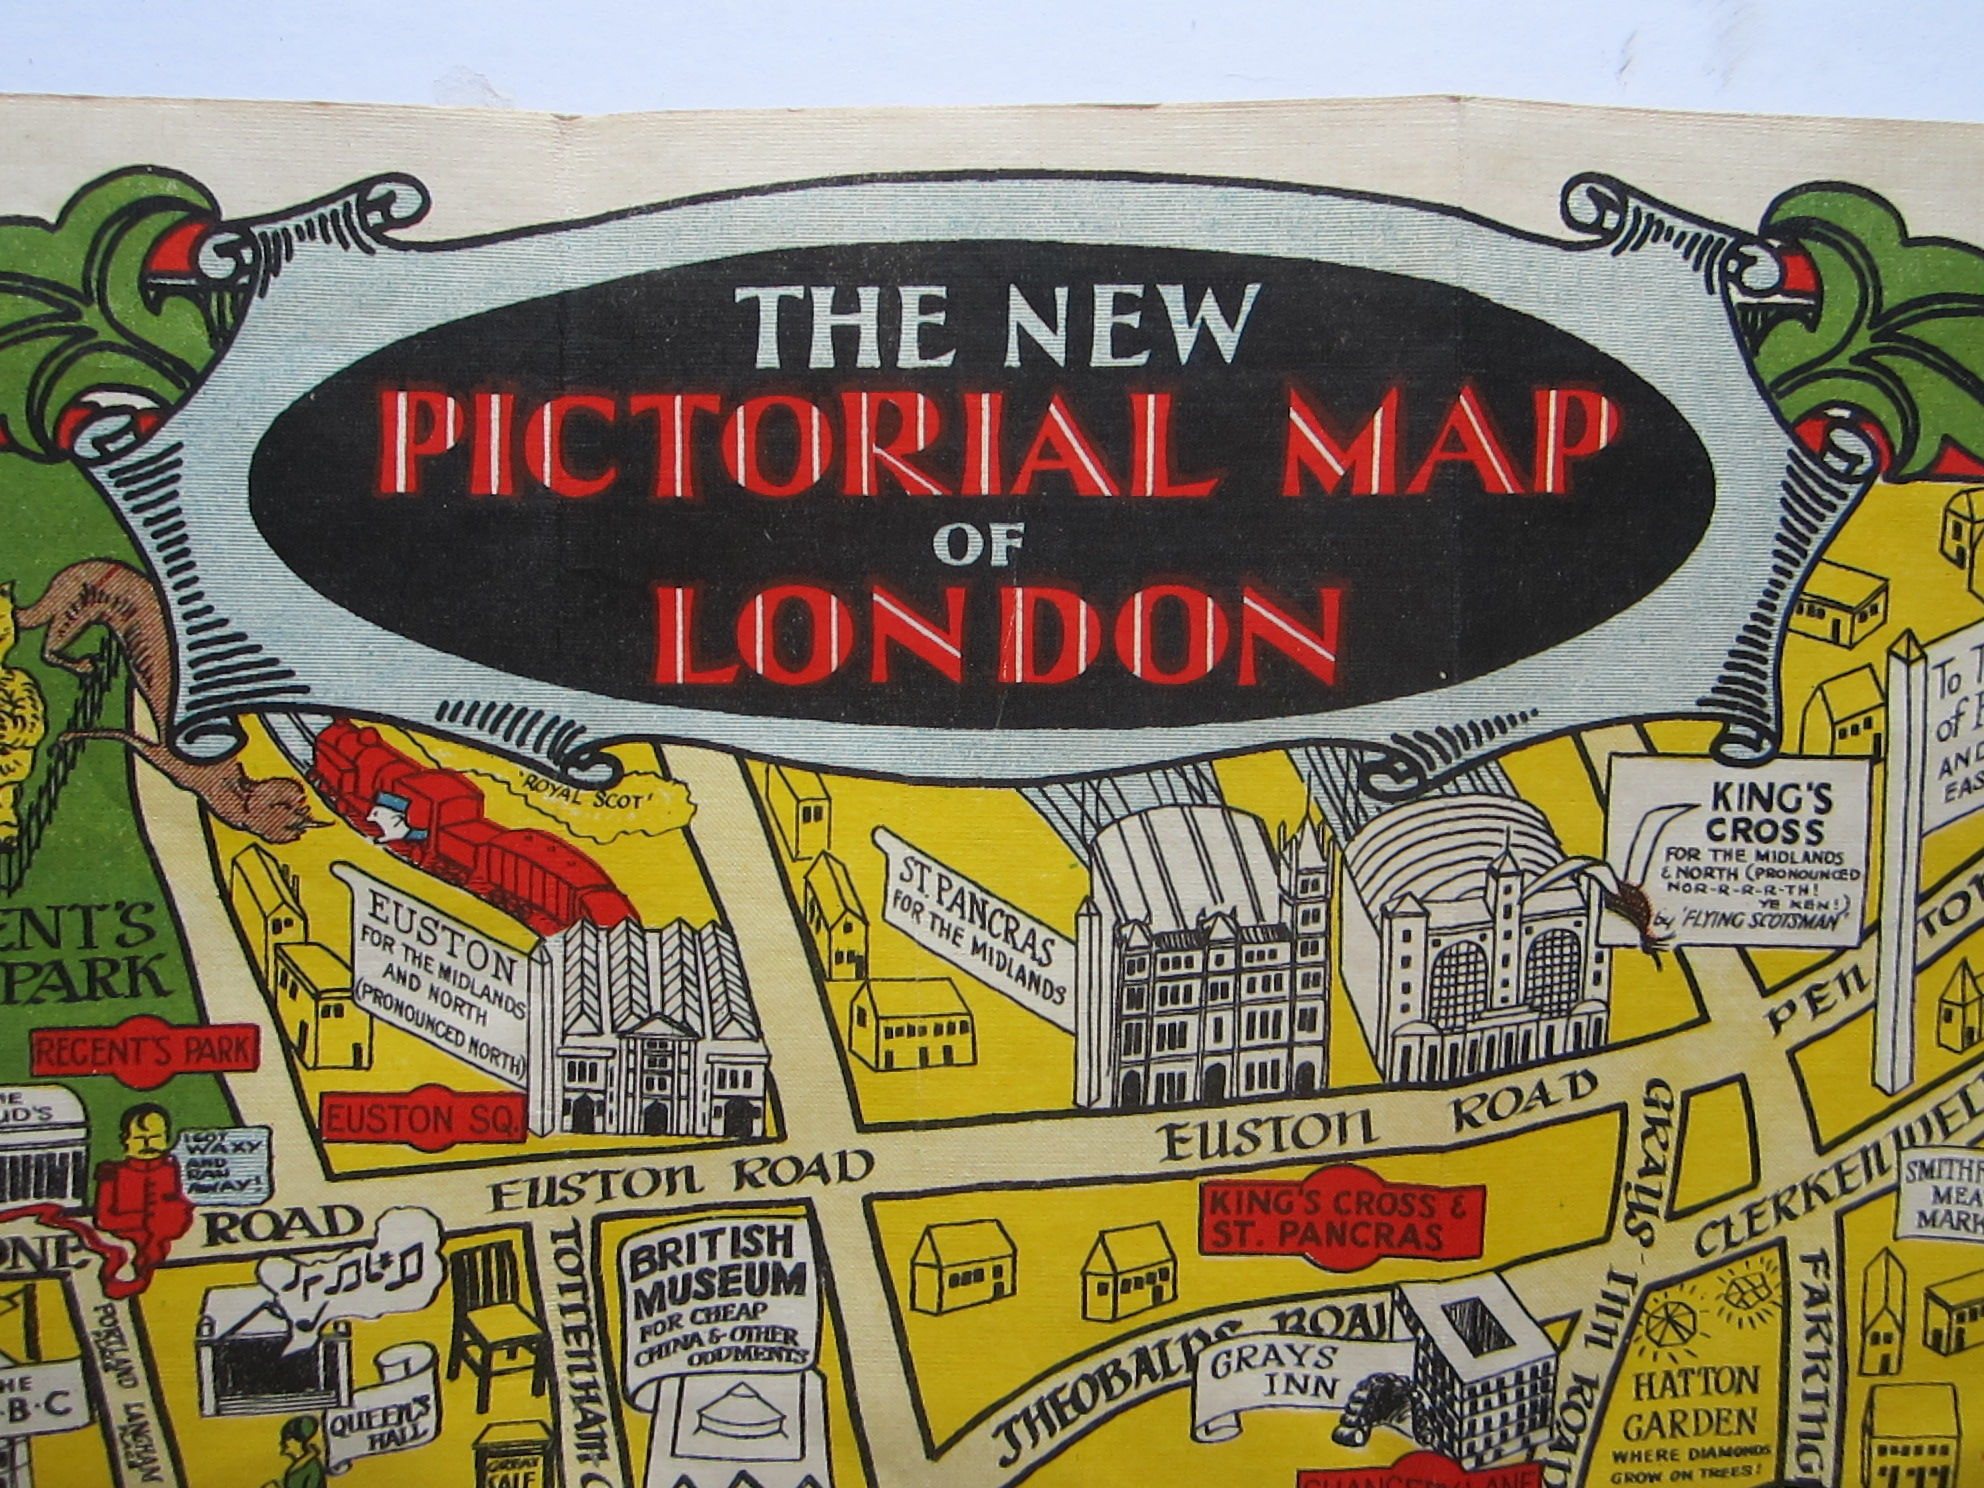 The New Pictorial Map of London (photo 8)